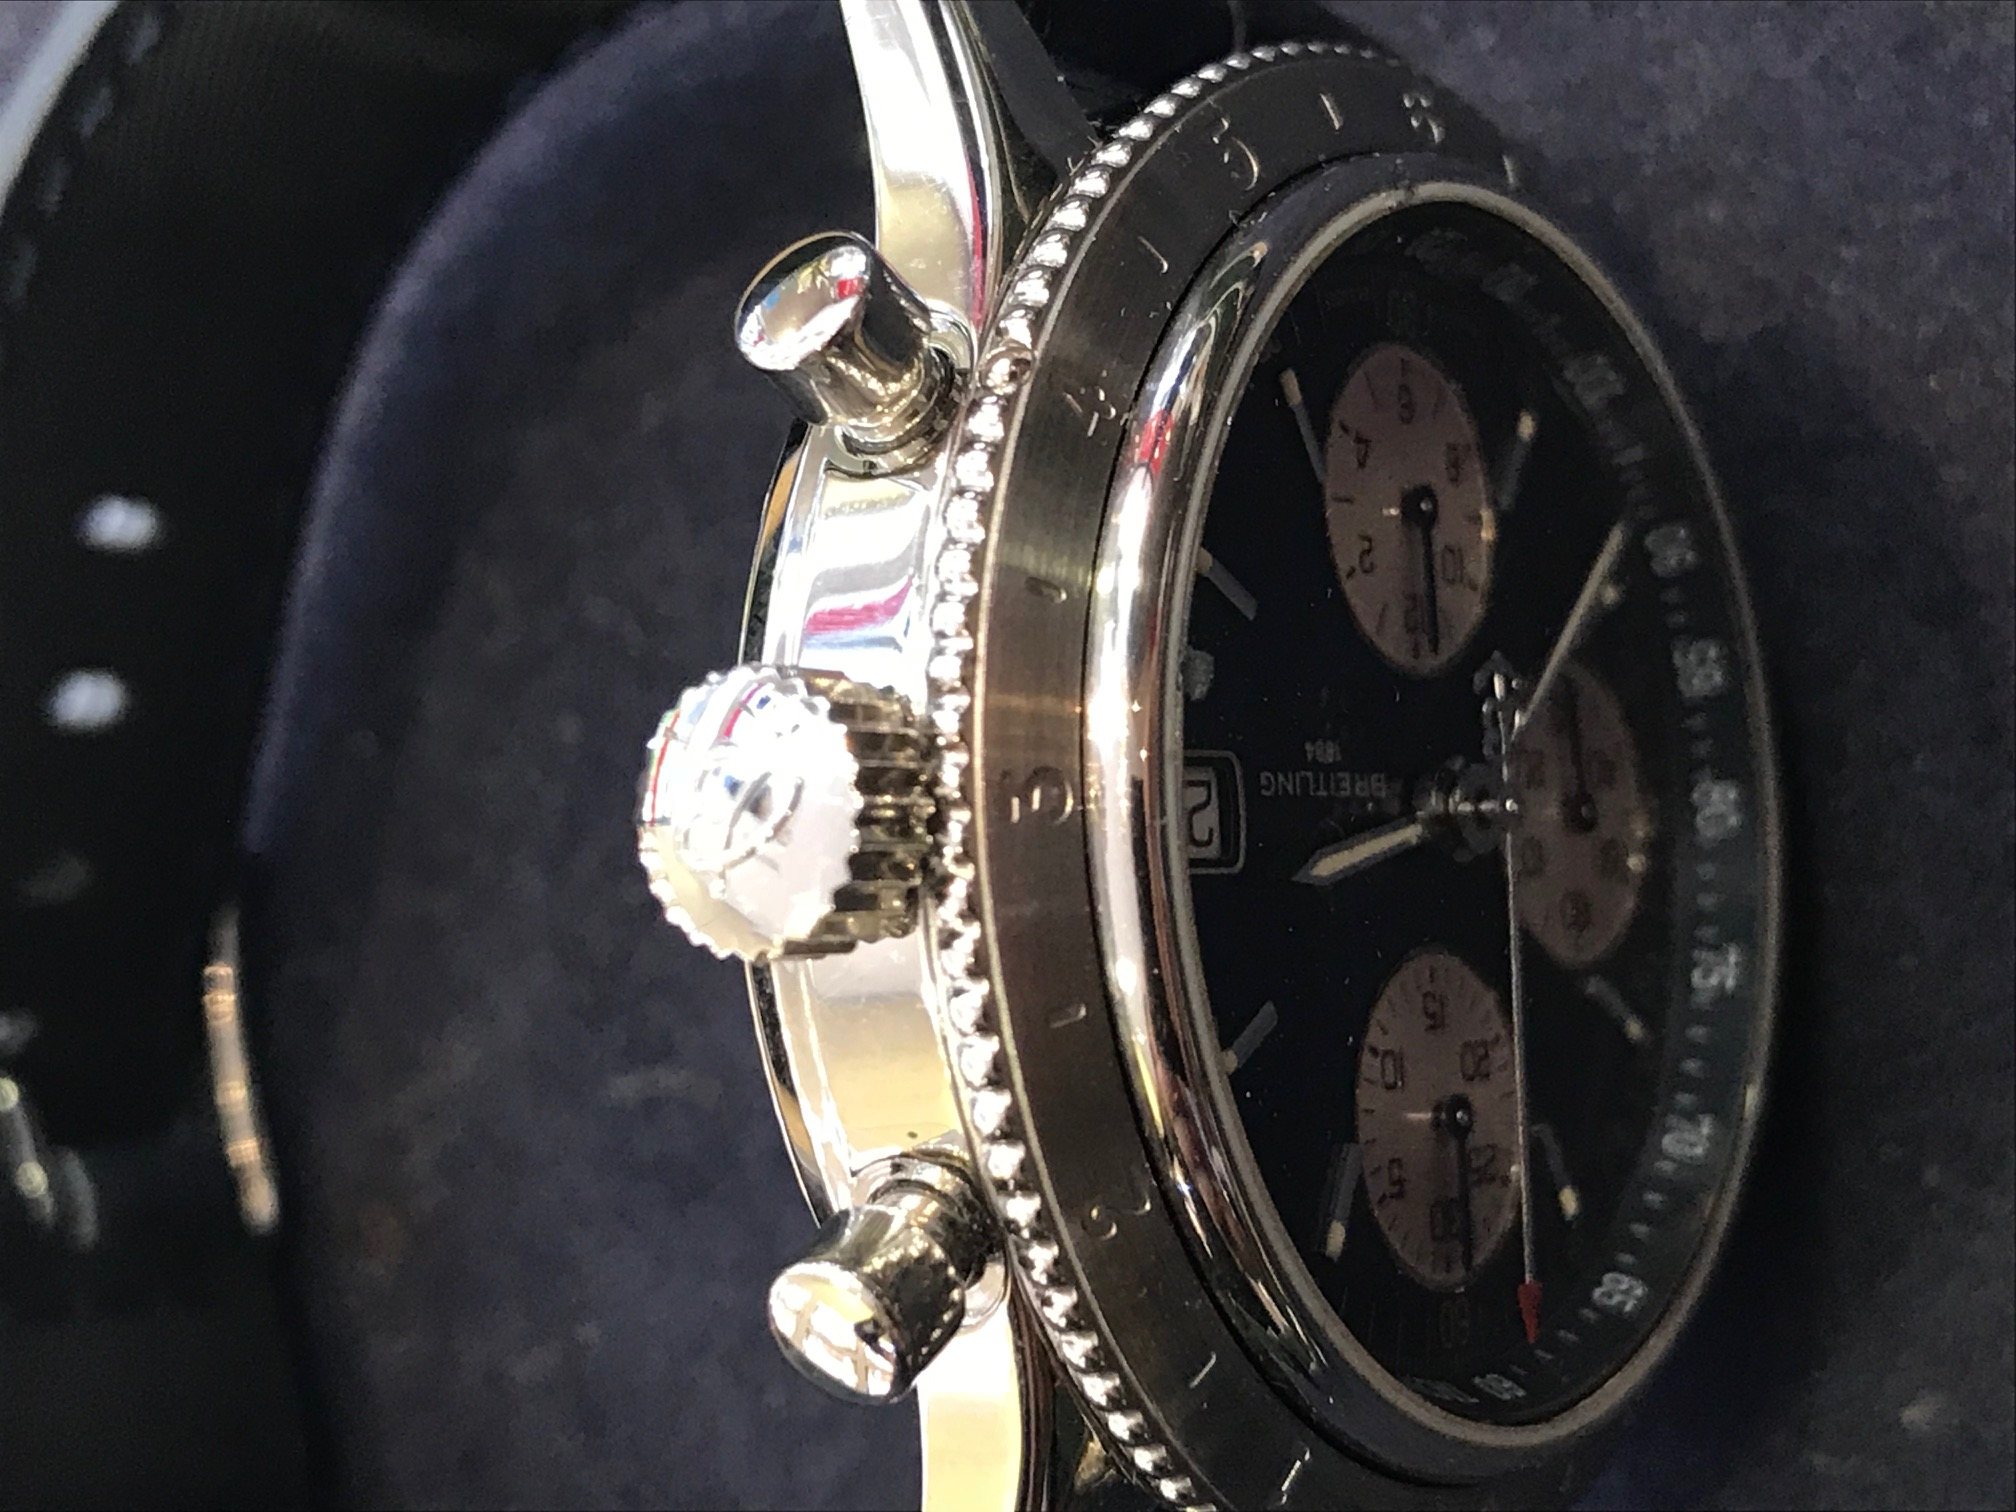 Breitling Chronomat 41mm, New Strap fusion Aquatic - Image 5 of 8